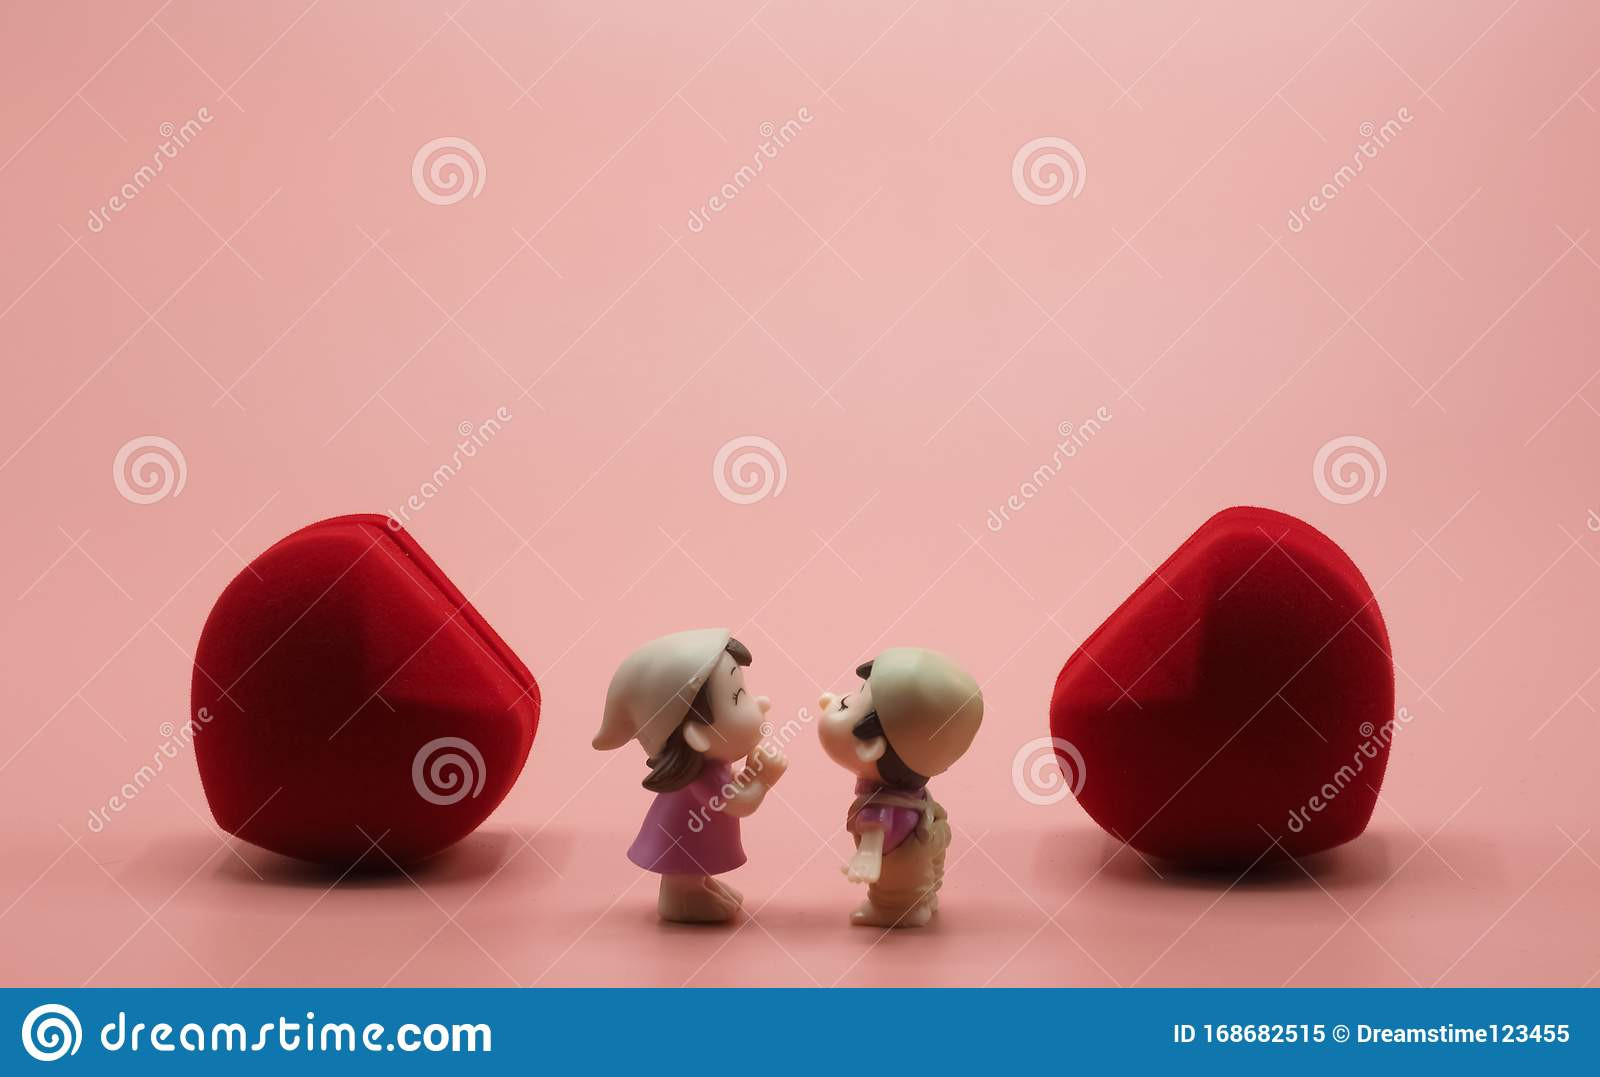 pink background wallpaper has two red heart middle girl boy doll toy romantic happy lovers kissing fourteen feb